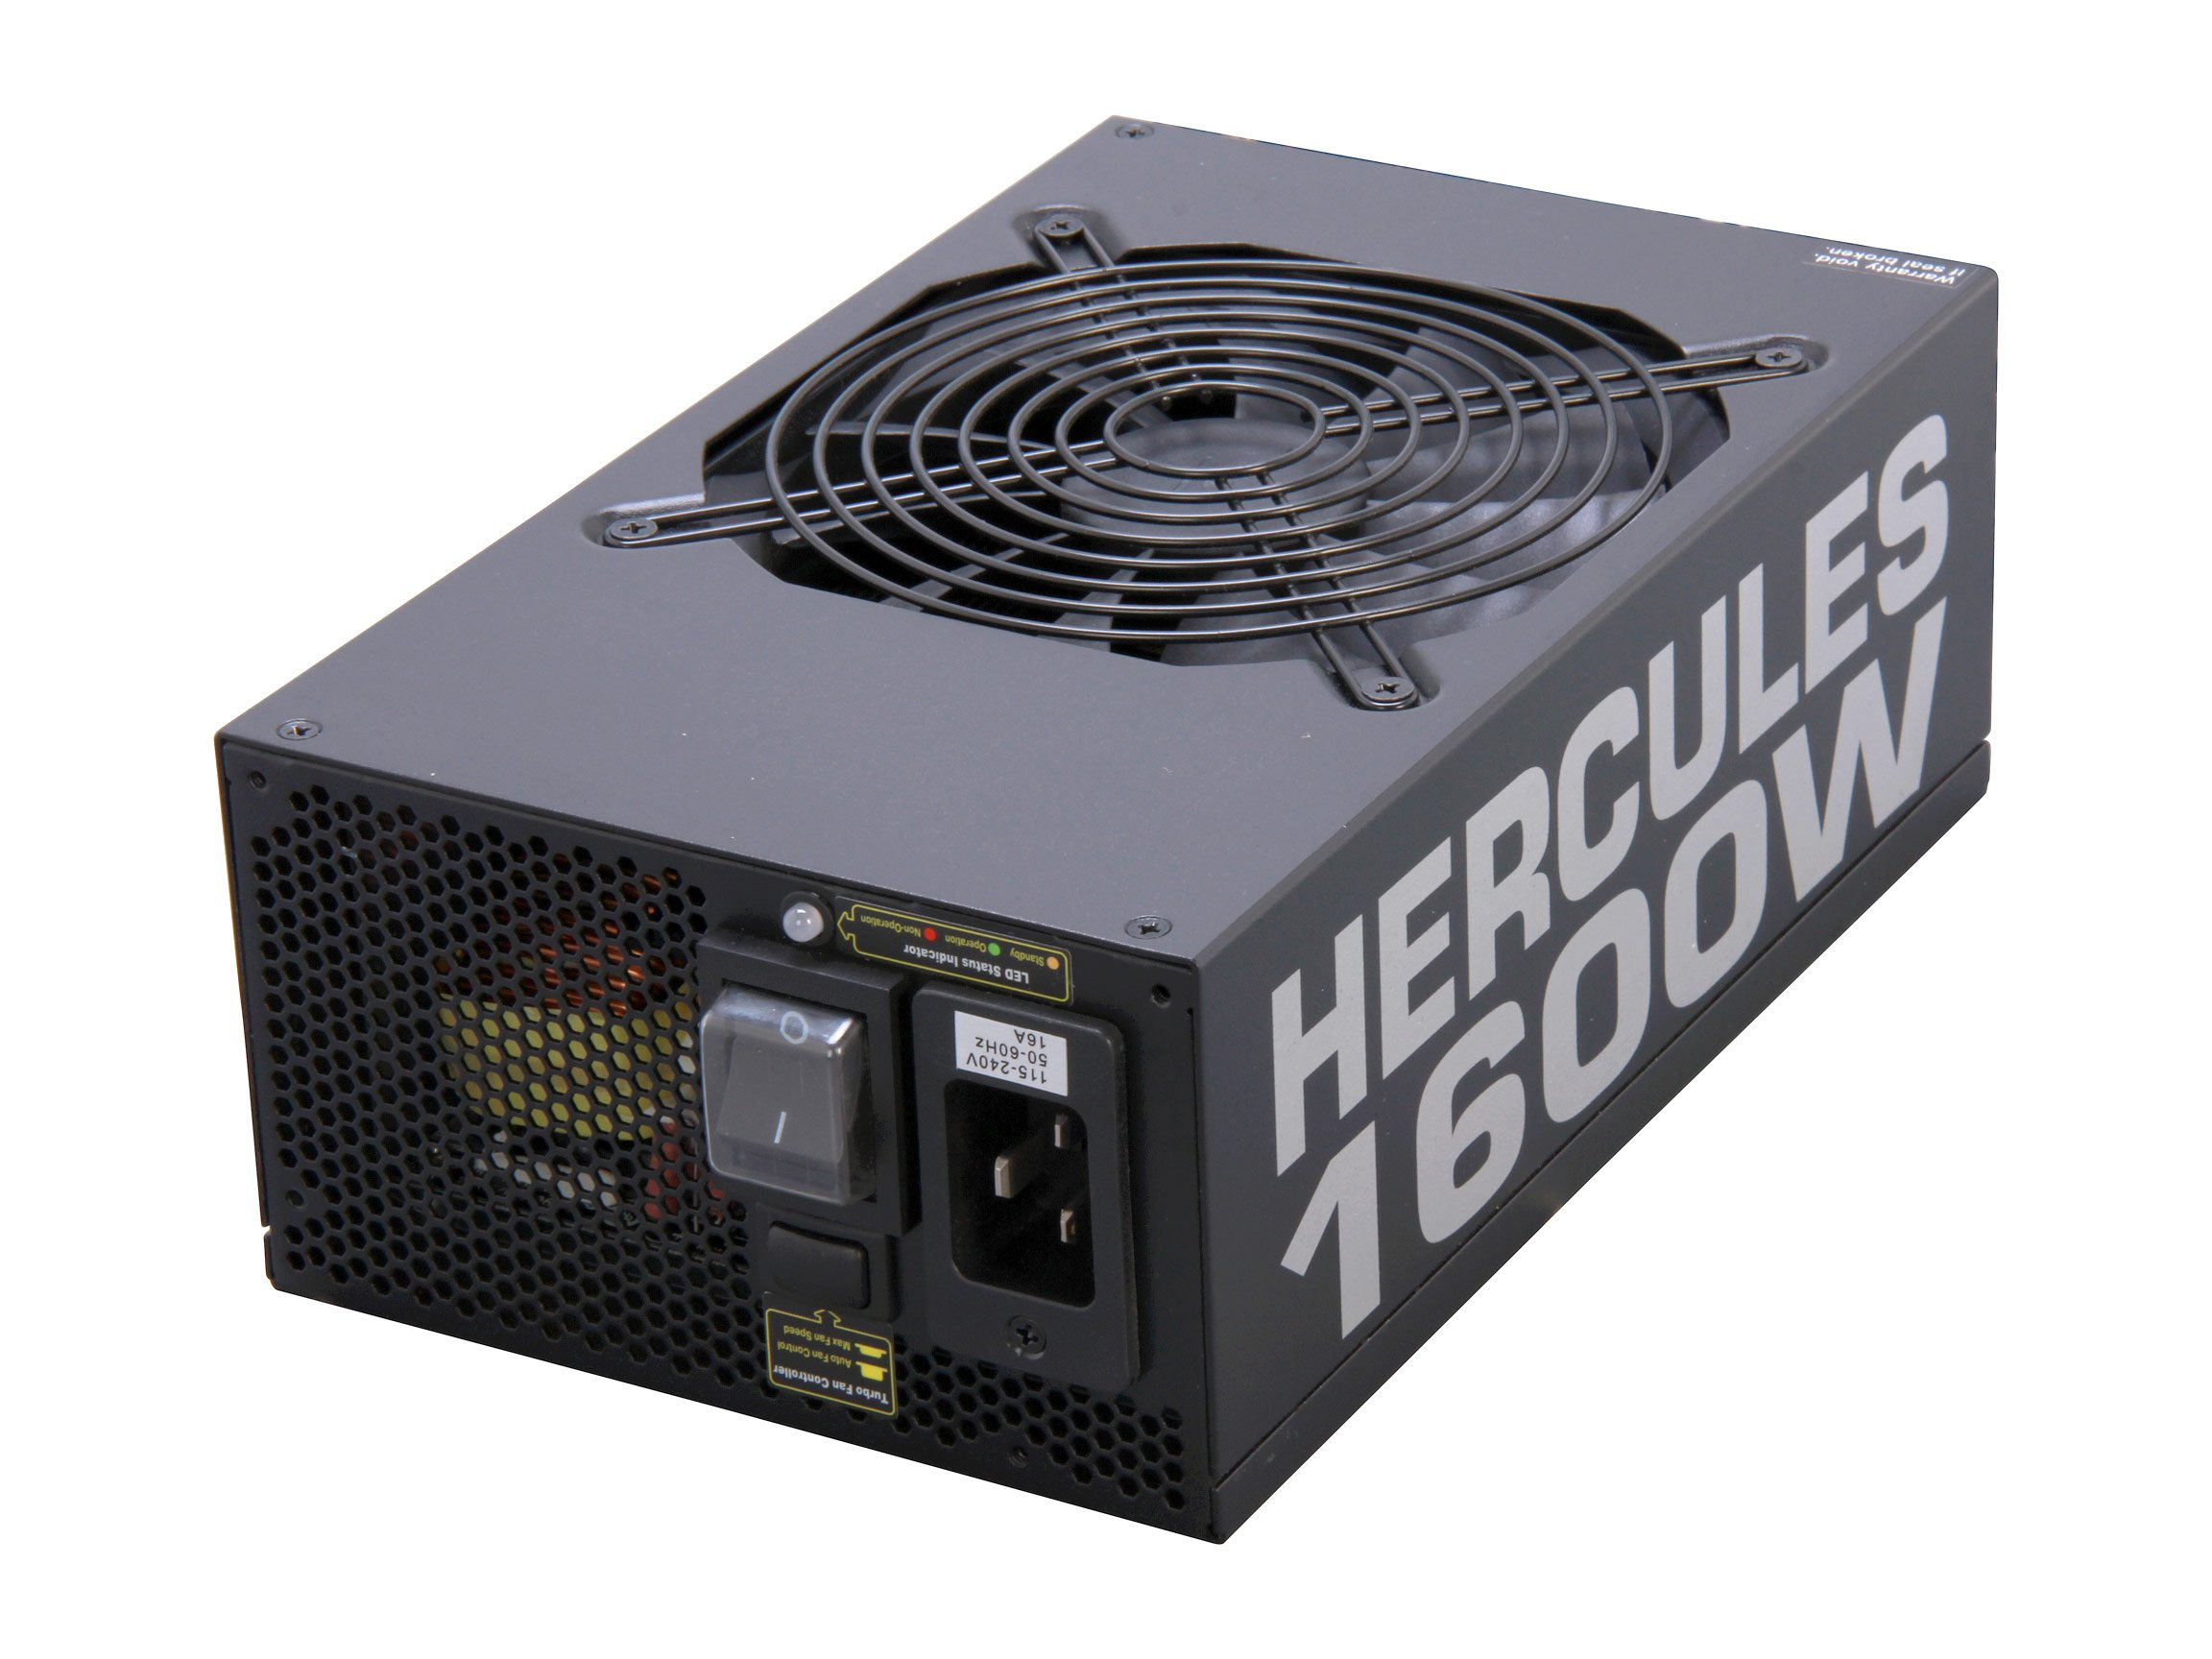 Rosewill 1600-Watt Intel Haswell Ready 80 Plus Silver Modular Gaming Power Supply ATX12V HERCULES-1600S by Rosewill